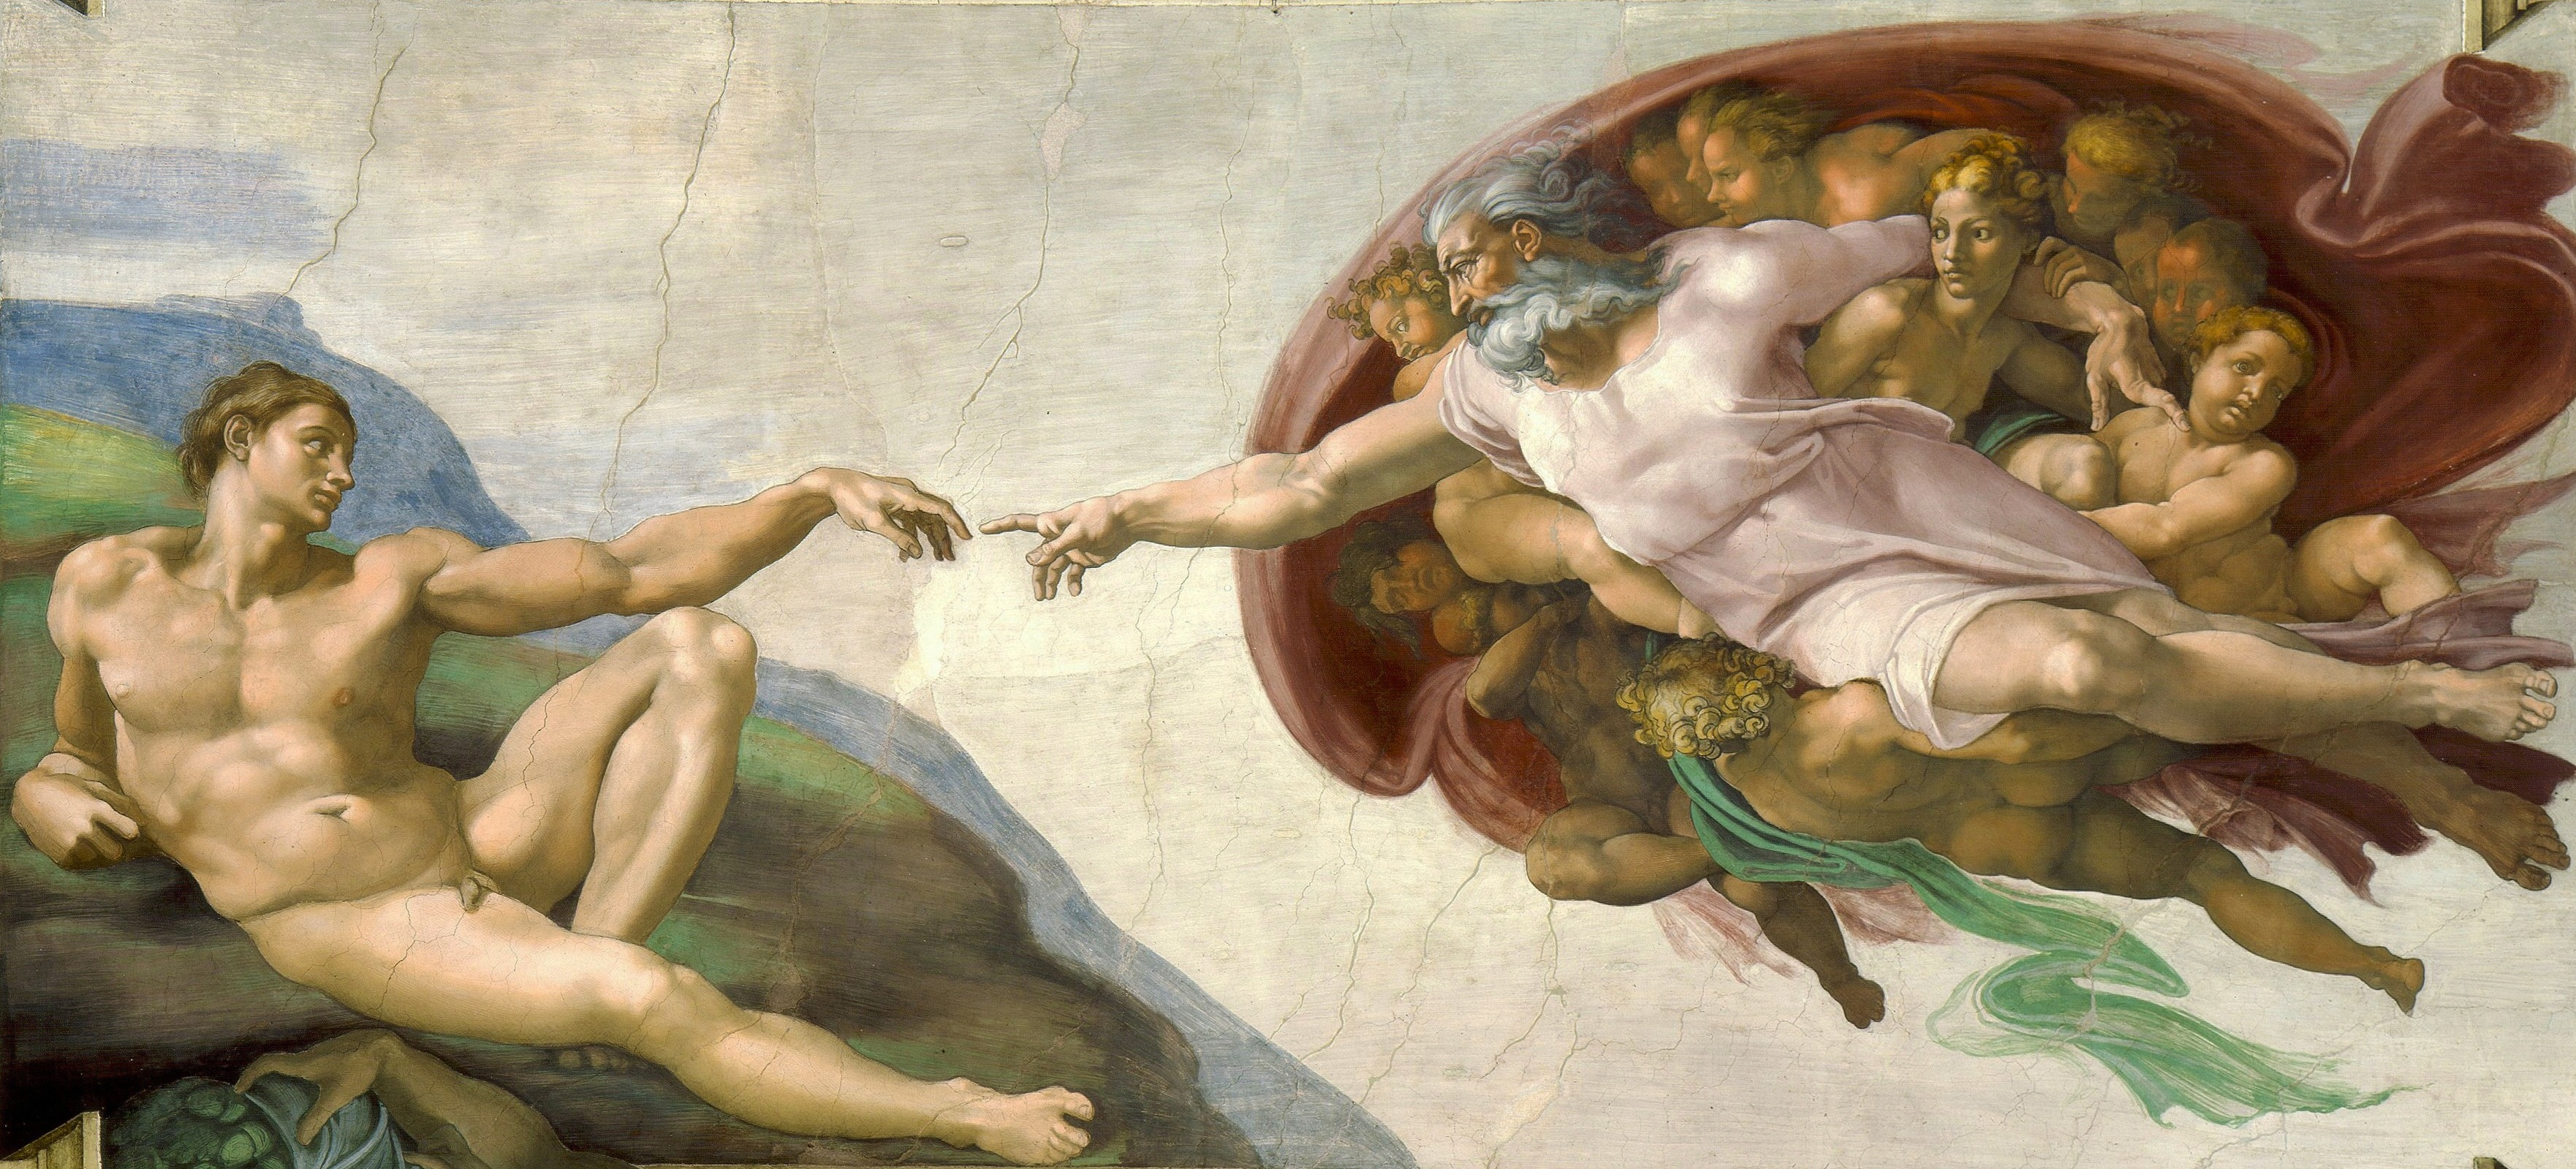 Michelangelo, The Creation of Adam, c. 1512.